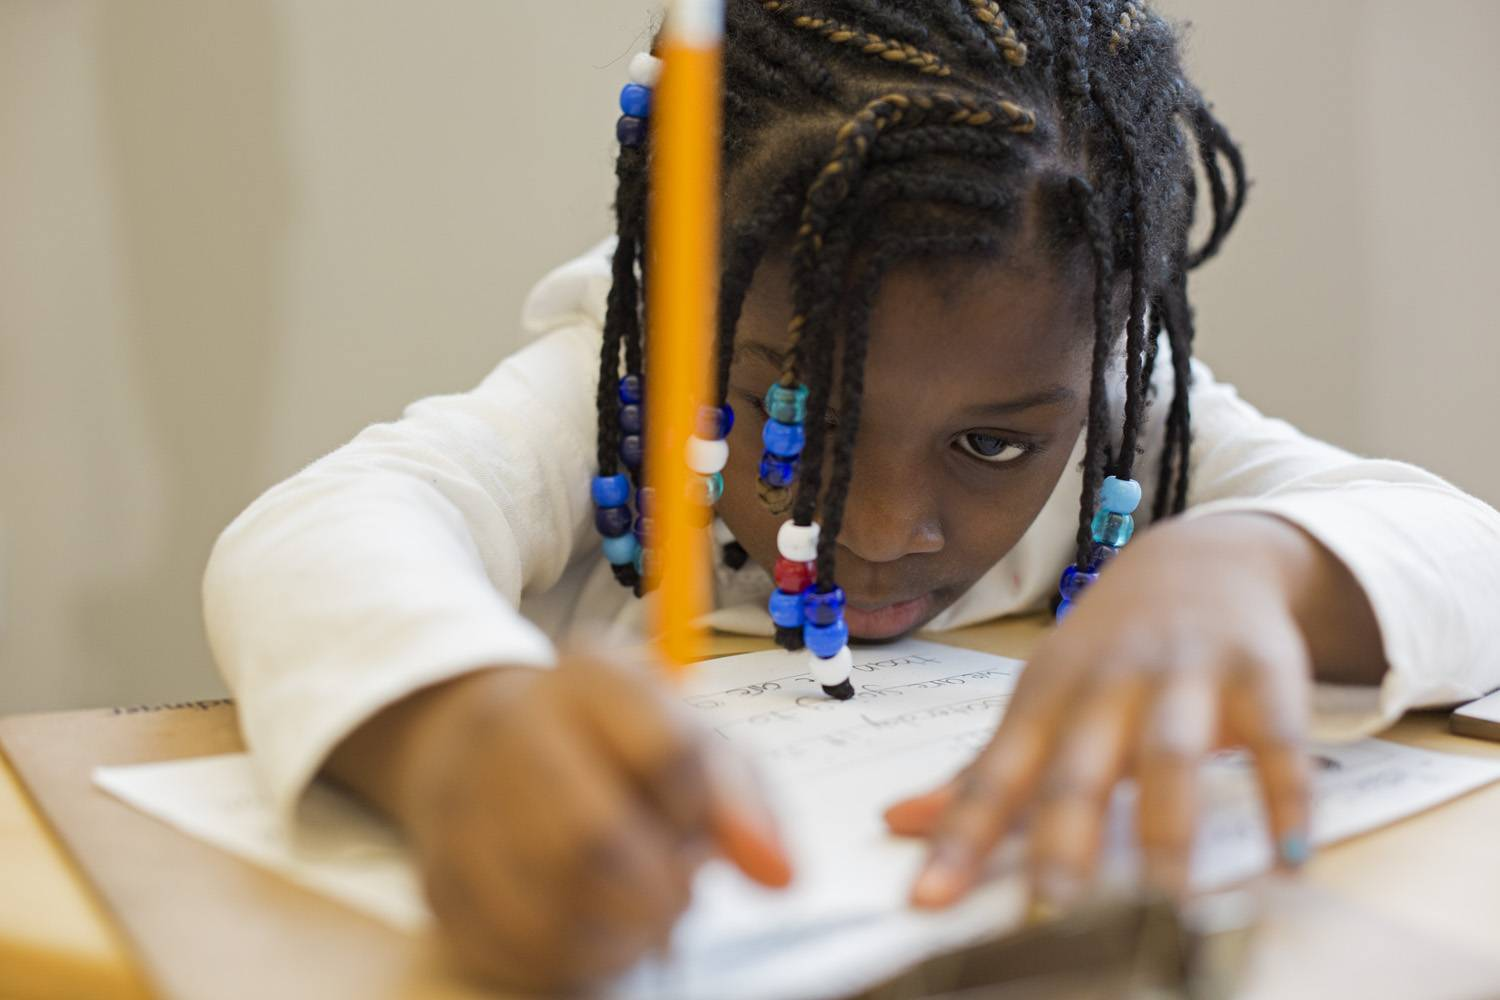 Detroit, Michigan - First grade at Mark Murray Elementary School, a unit of the University Prep Academy. University Prep is a tuition-free charter school that aims to prepare urban children for college.